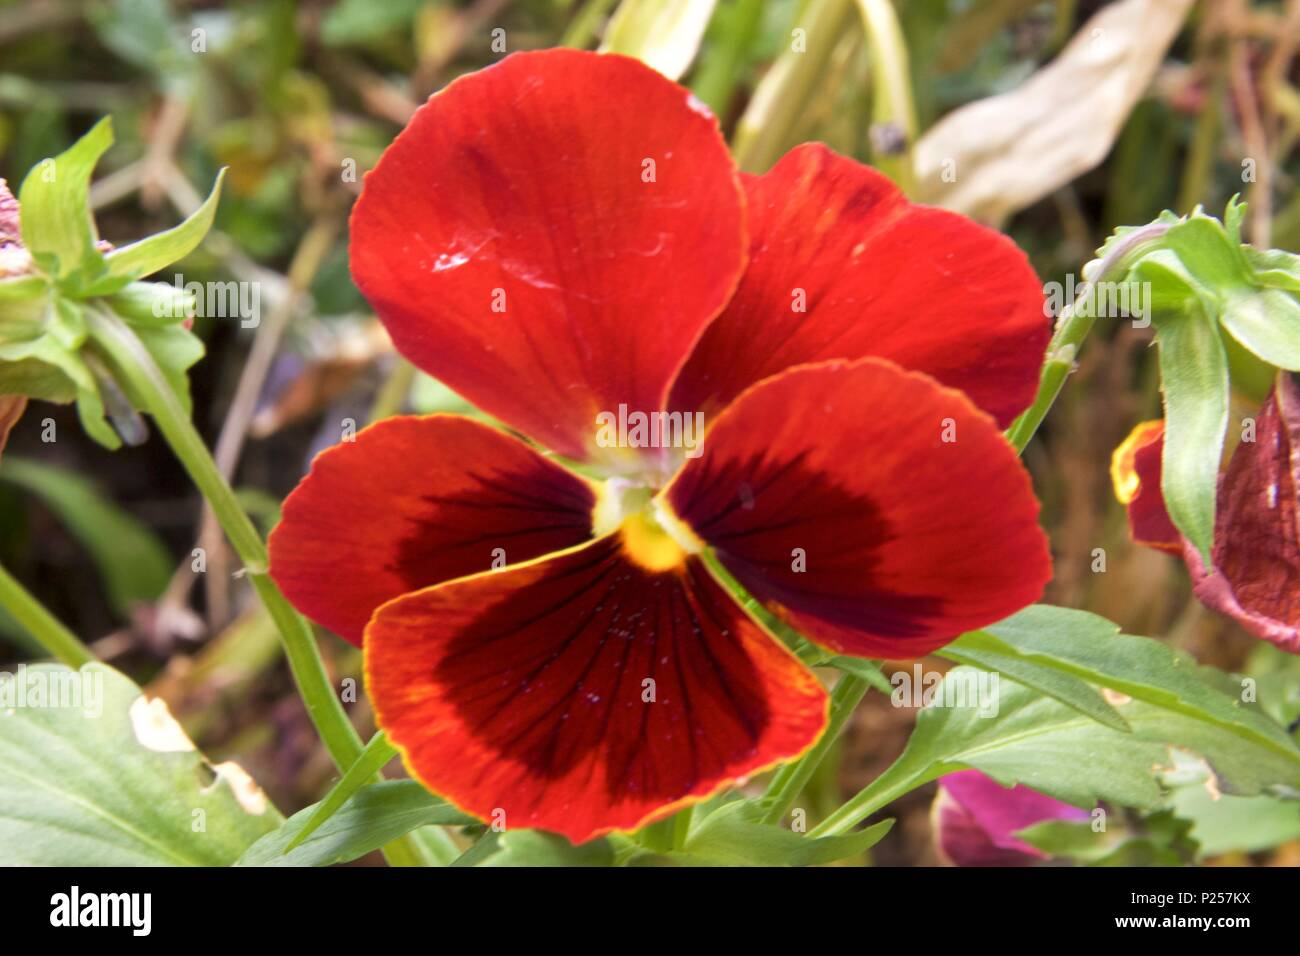 A red pansy, also known as viola x wittrockiana and viola tricolor, is a hybrid plant - Stock Image